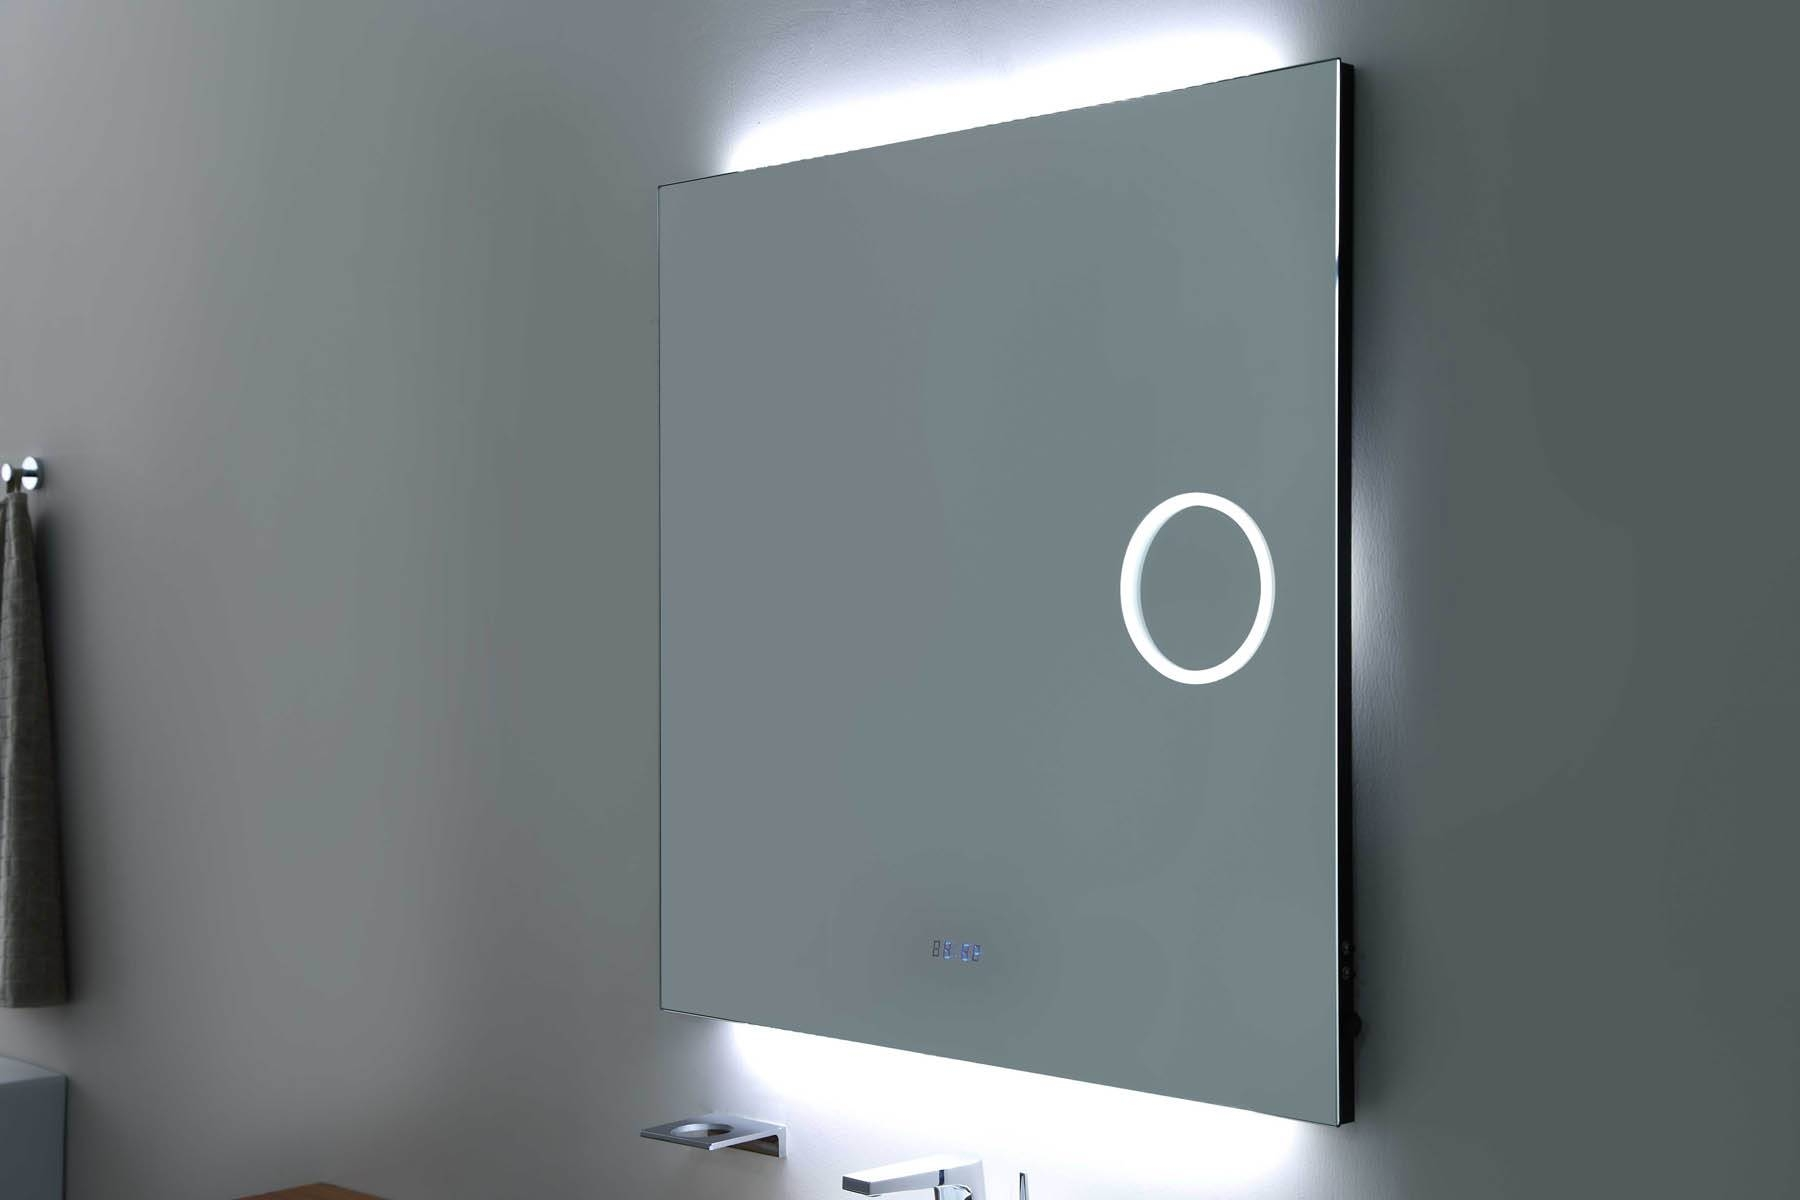 Square Frameless Mirror With Led,magnifier, Digital Clock Bathroom With Square Frameless Mirrors (View 15 of 15)